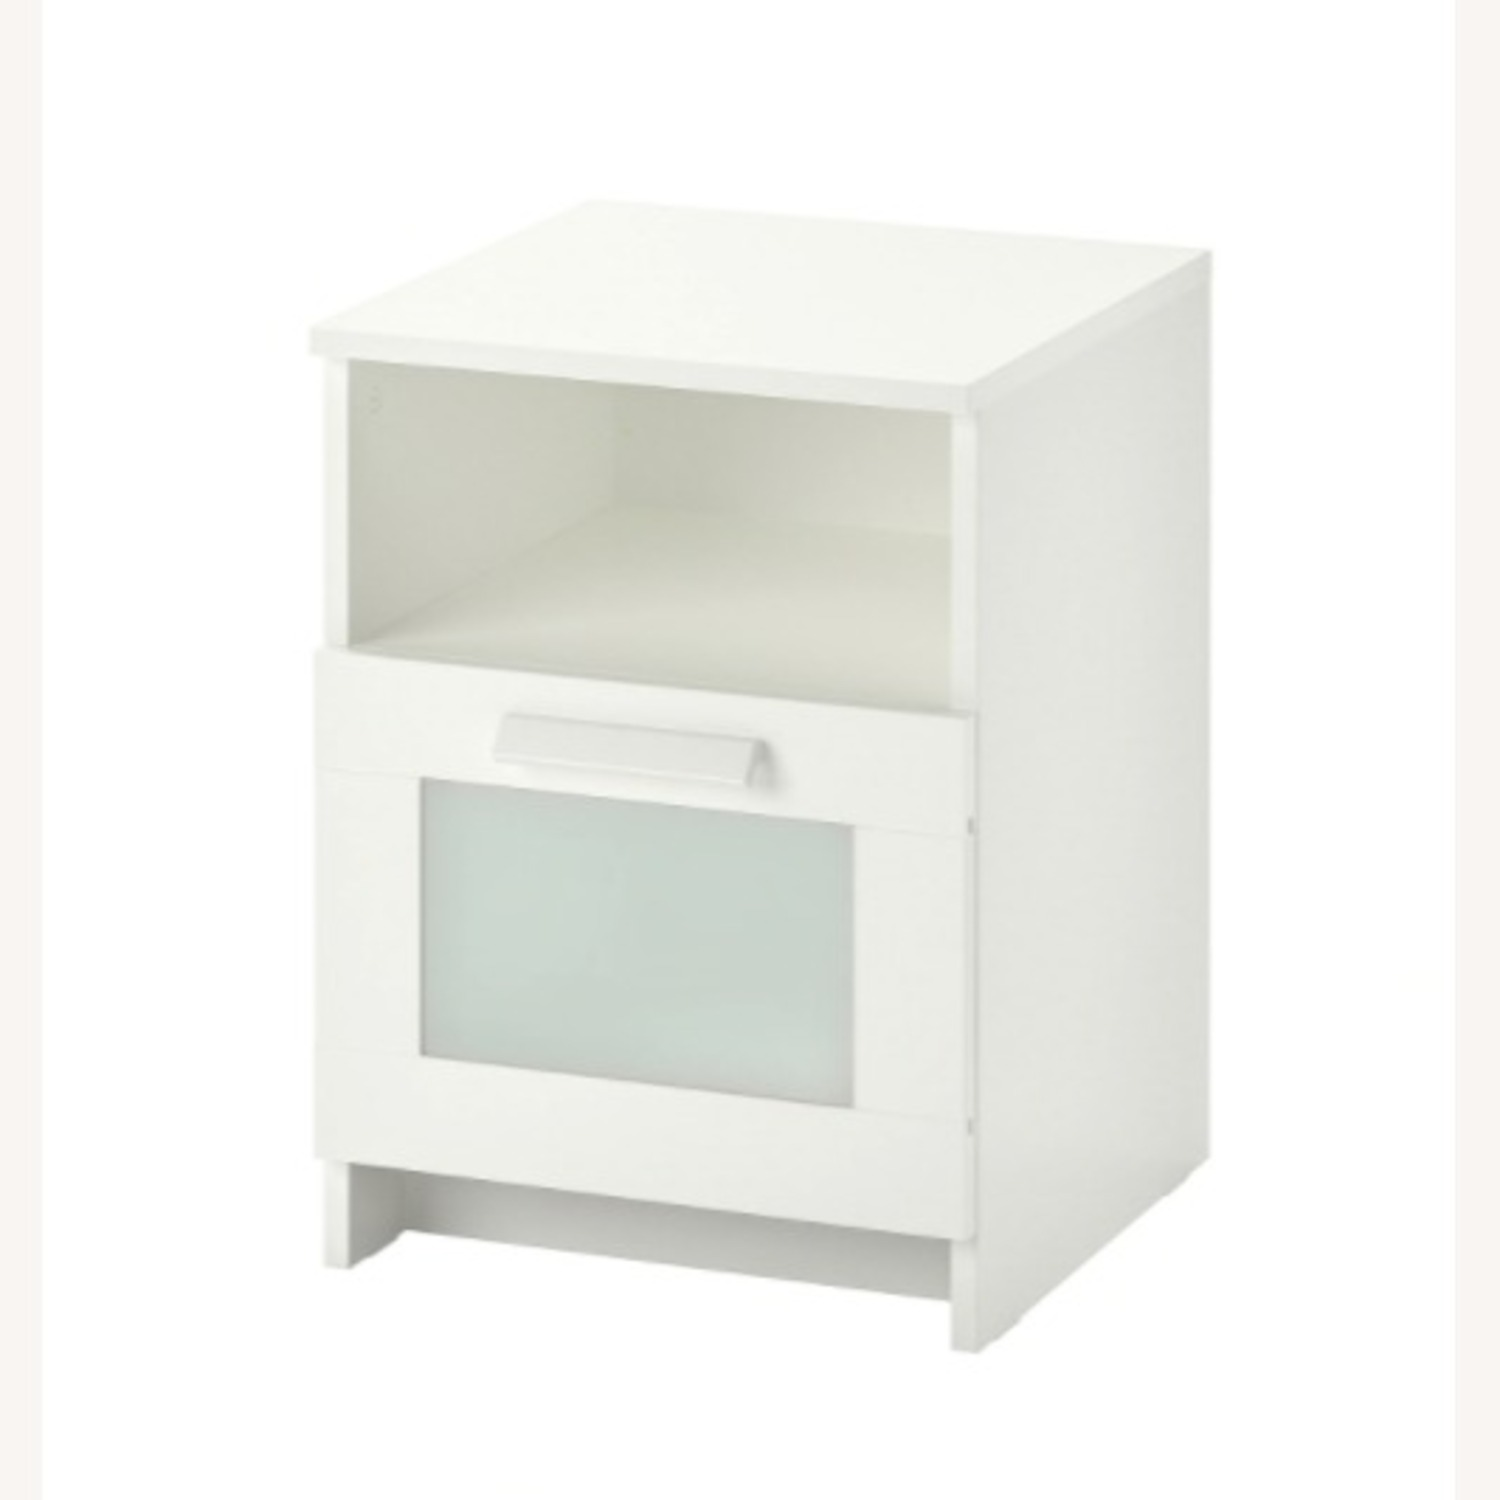 White Nightstand with Storage Space - image-4